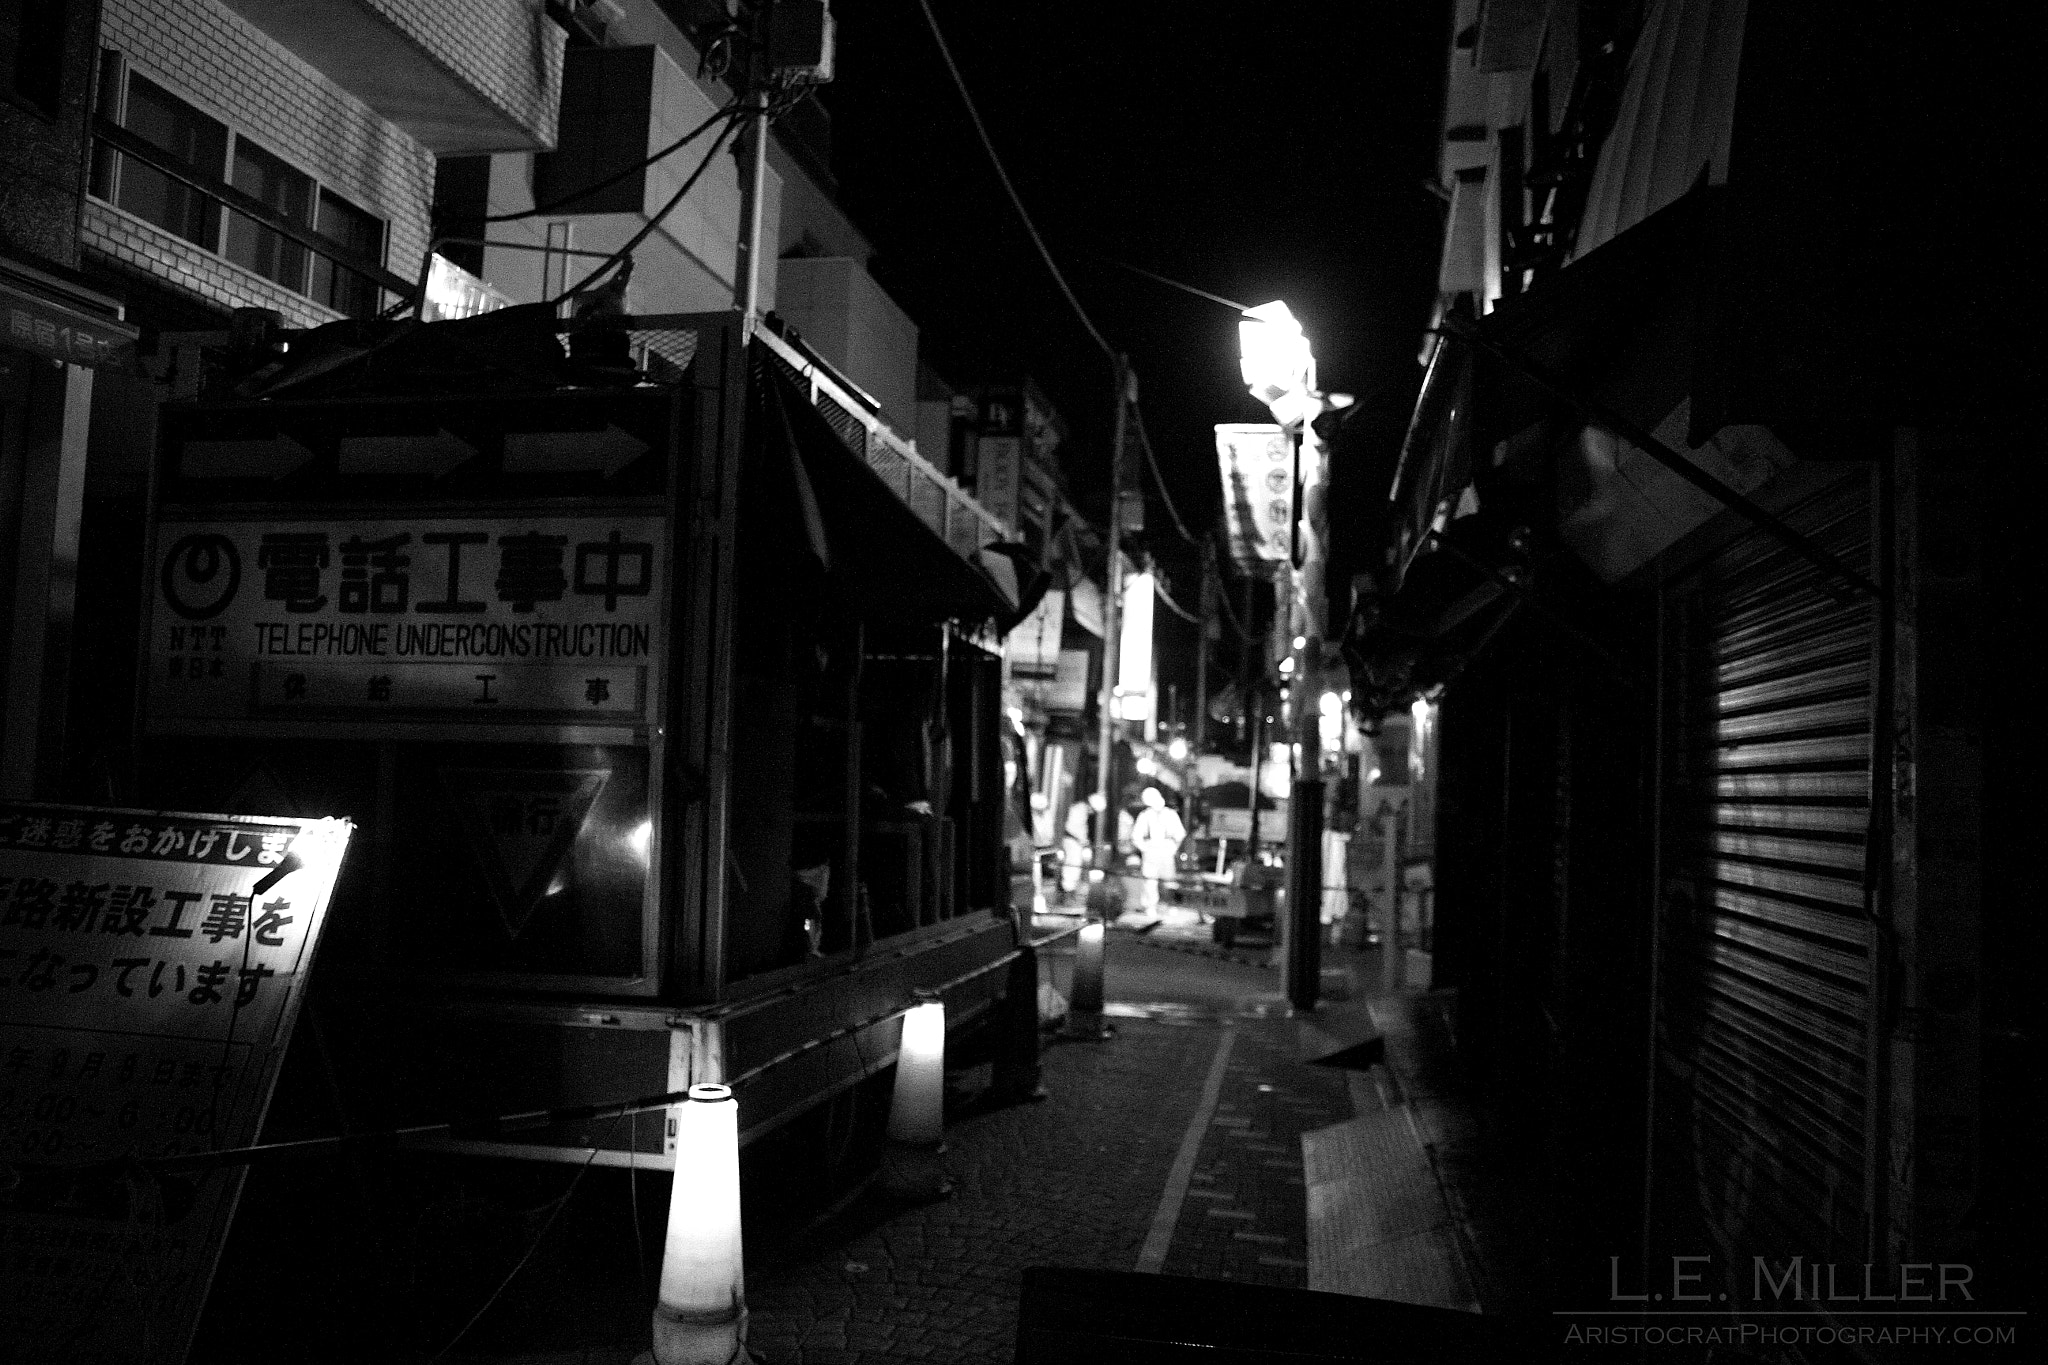 Photograph Takeshita After Dark by L.E. Miller on 500px